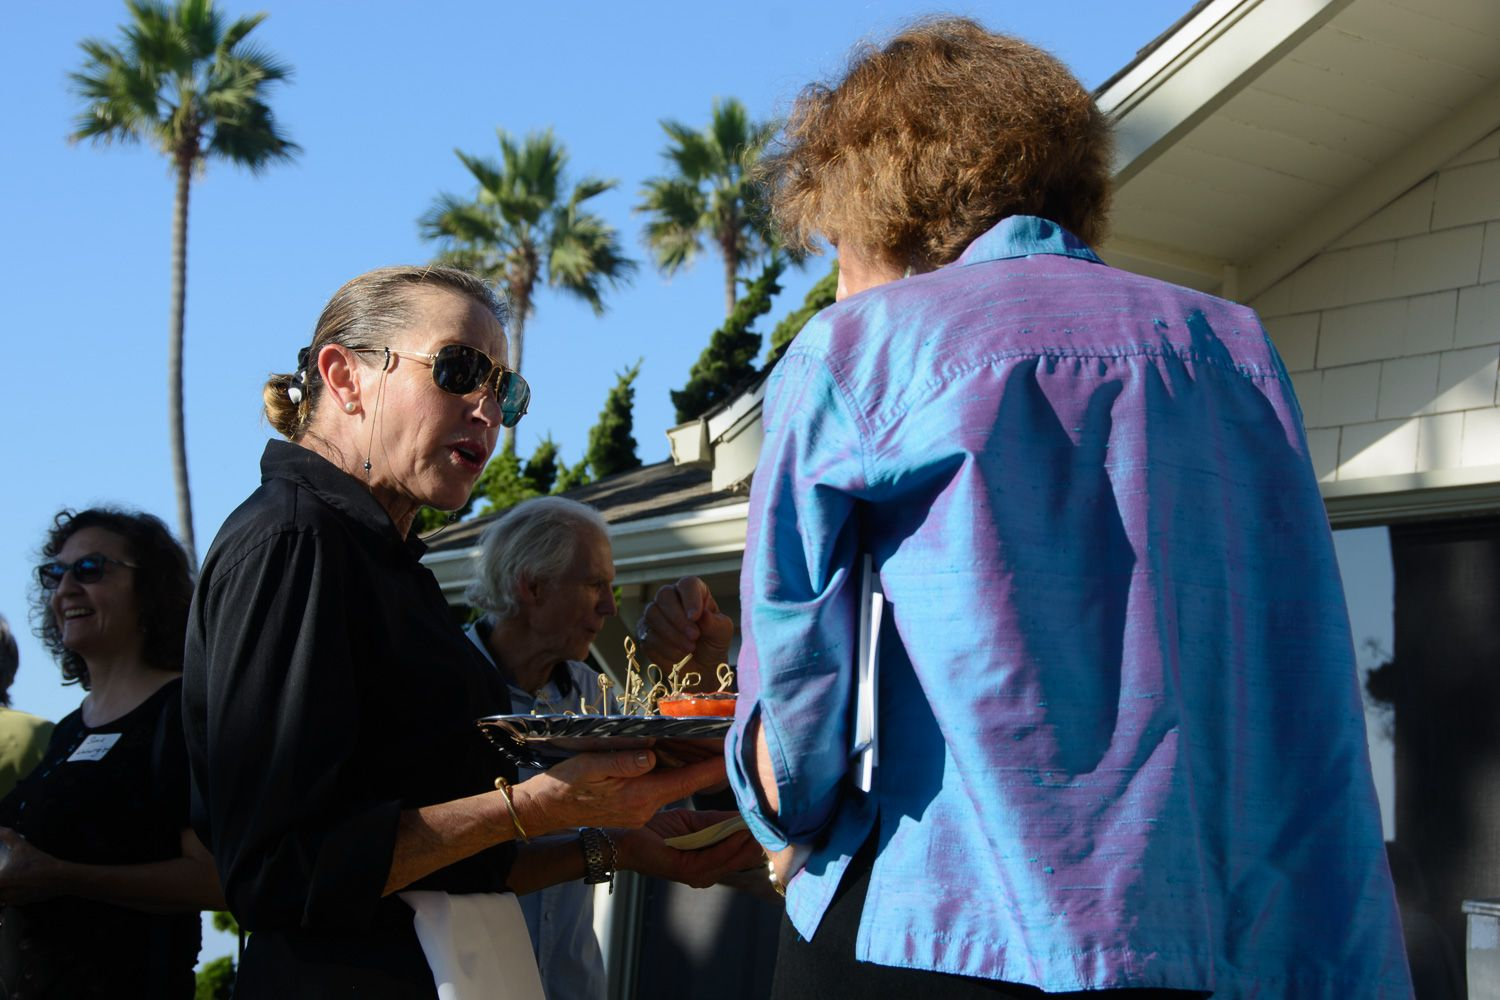 Wolfgang H. Berger 'Celebration of Life'. Sunday, October 15, 2017 at the Martin Johnson House, Scripps Institution of Oceanography, La Jolla, California.